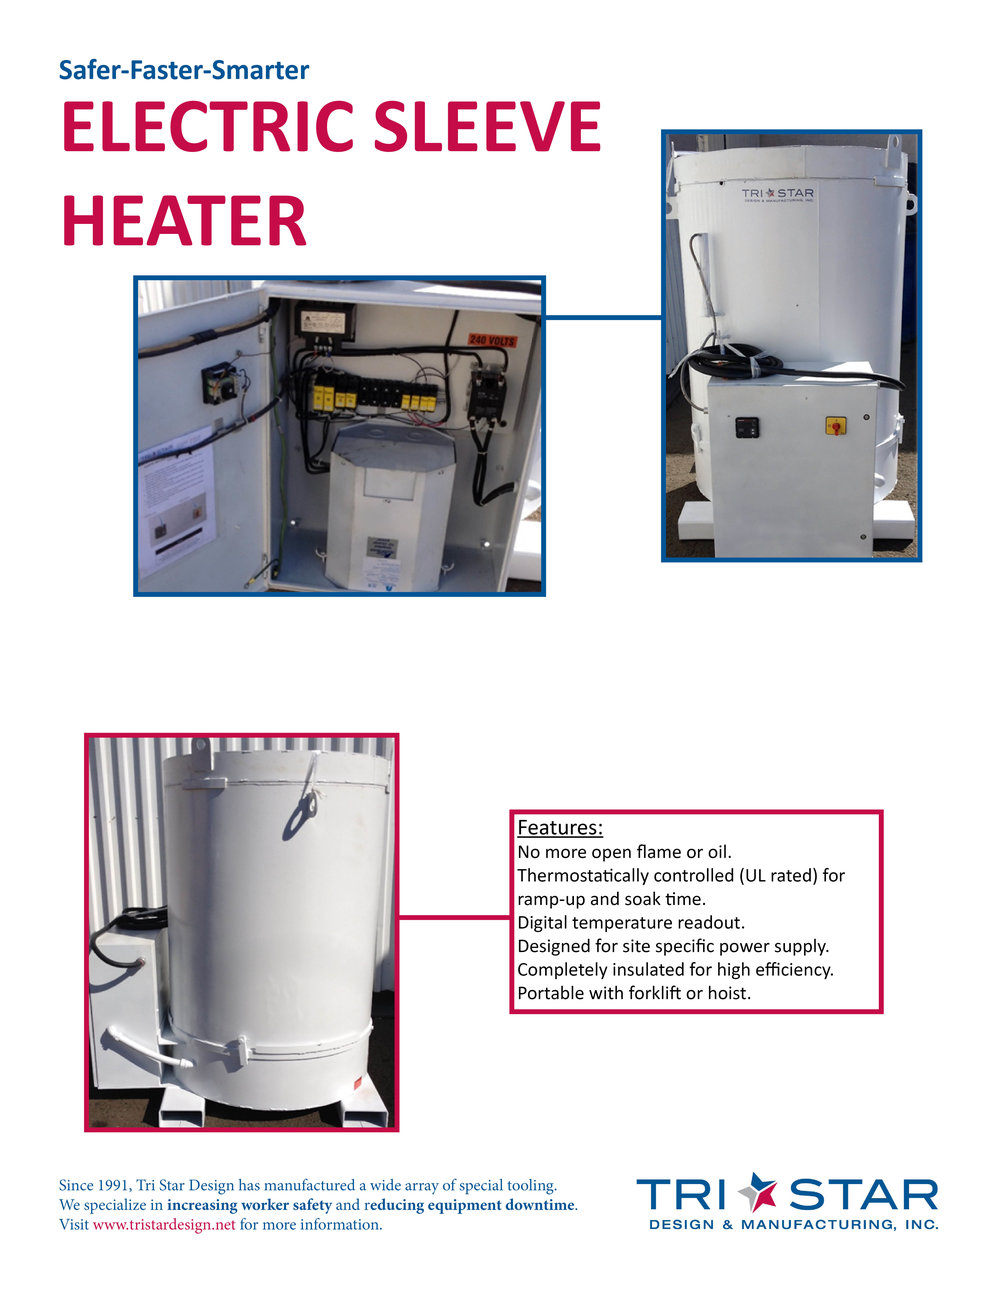 electric sleeve heater.jpg